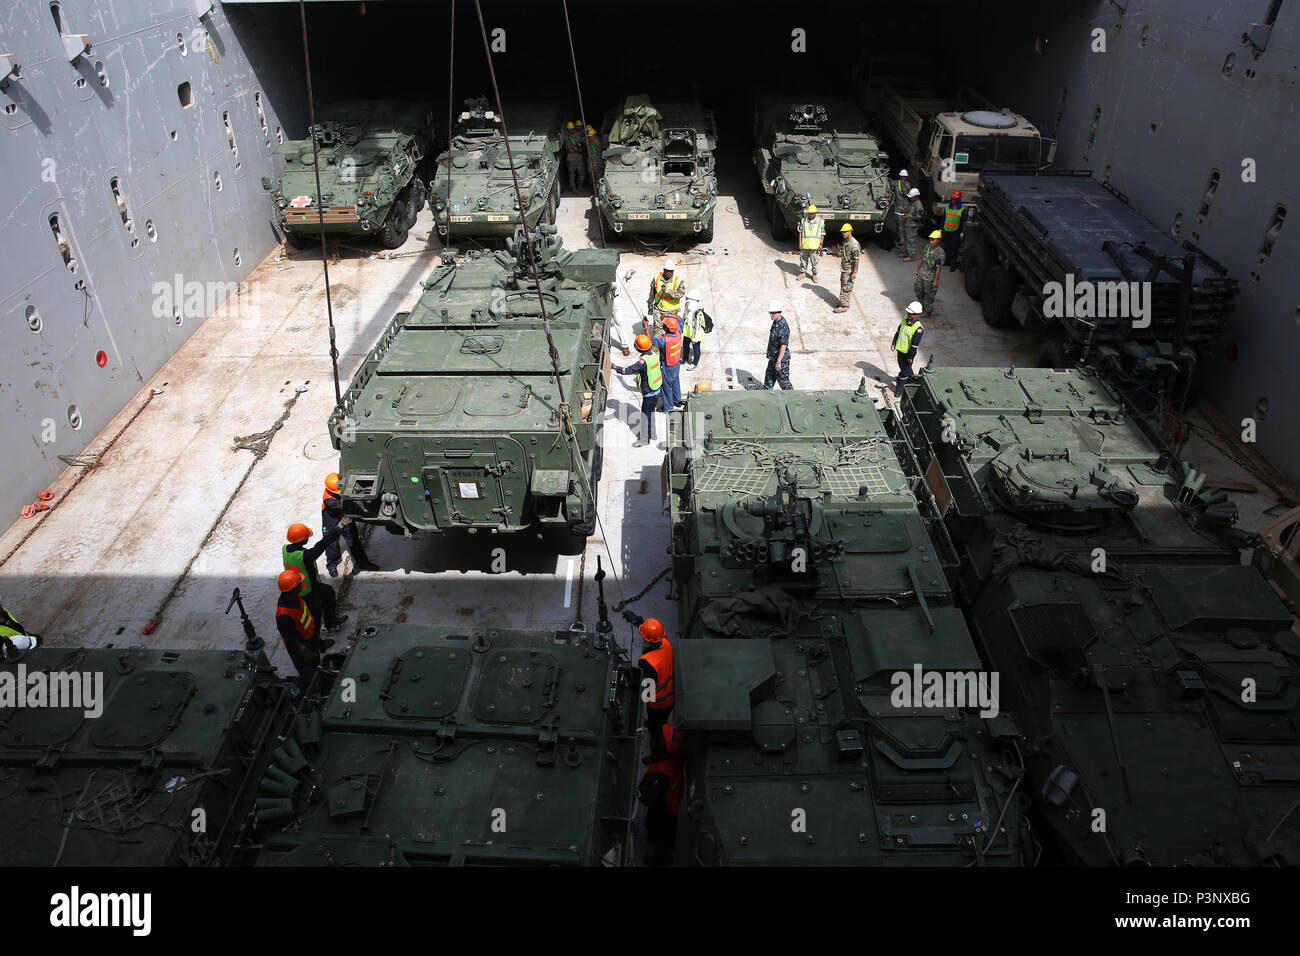 160712-N-IX266-009 SATTAHIP, Thailand—An M1126 Stryker is staged in the cargo deck of general purpose, heavy lift ship MV OCEAN GLORY during a backload of equipment at Chuk Samet, here, from exercise Hanuman Guardian, July 12. Military Sealift Command's contracted voyage-charter MV OCEAN GLORY recently conducted a backload of about 250 items in Thailand as part of U.S. Army Pacific's mobility operation PACIFIC PATHWAYS 16-2. (U.S. Navy photo by Grady T. Fontana/Released) - Stock Image